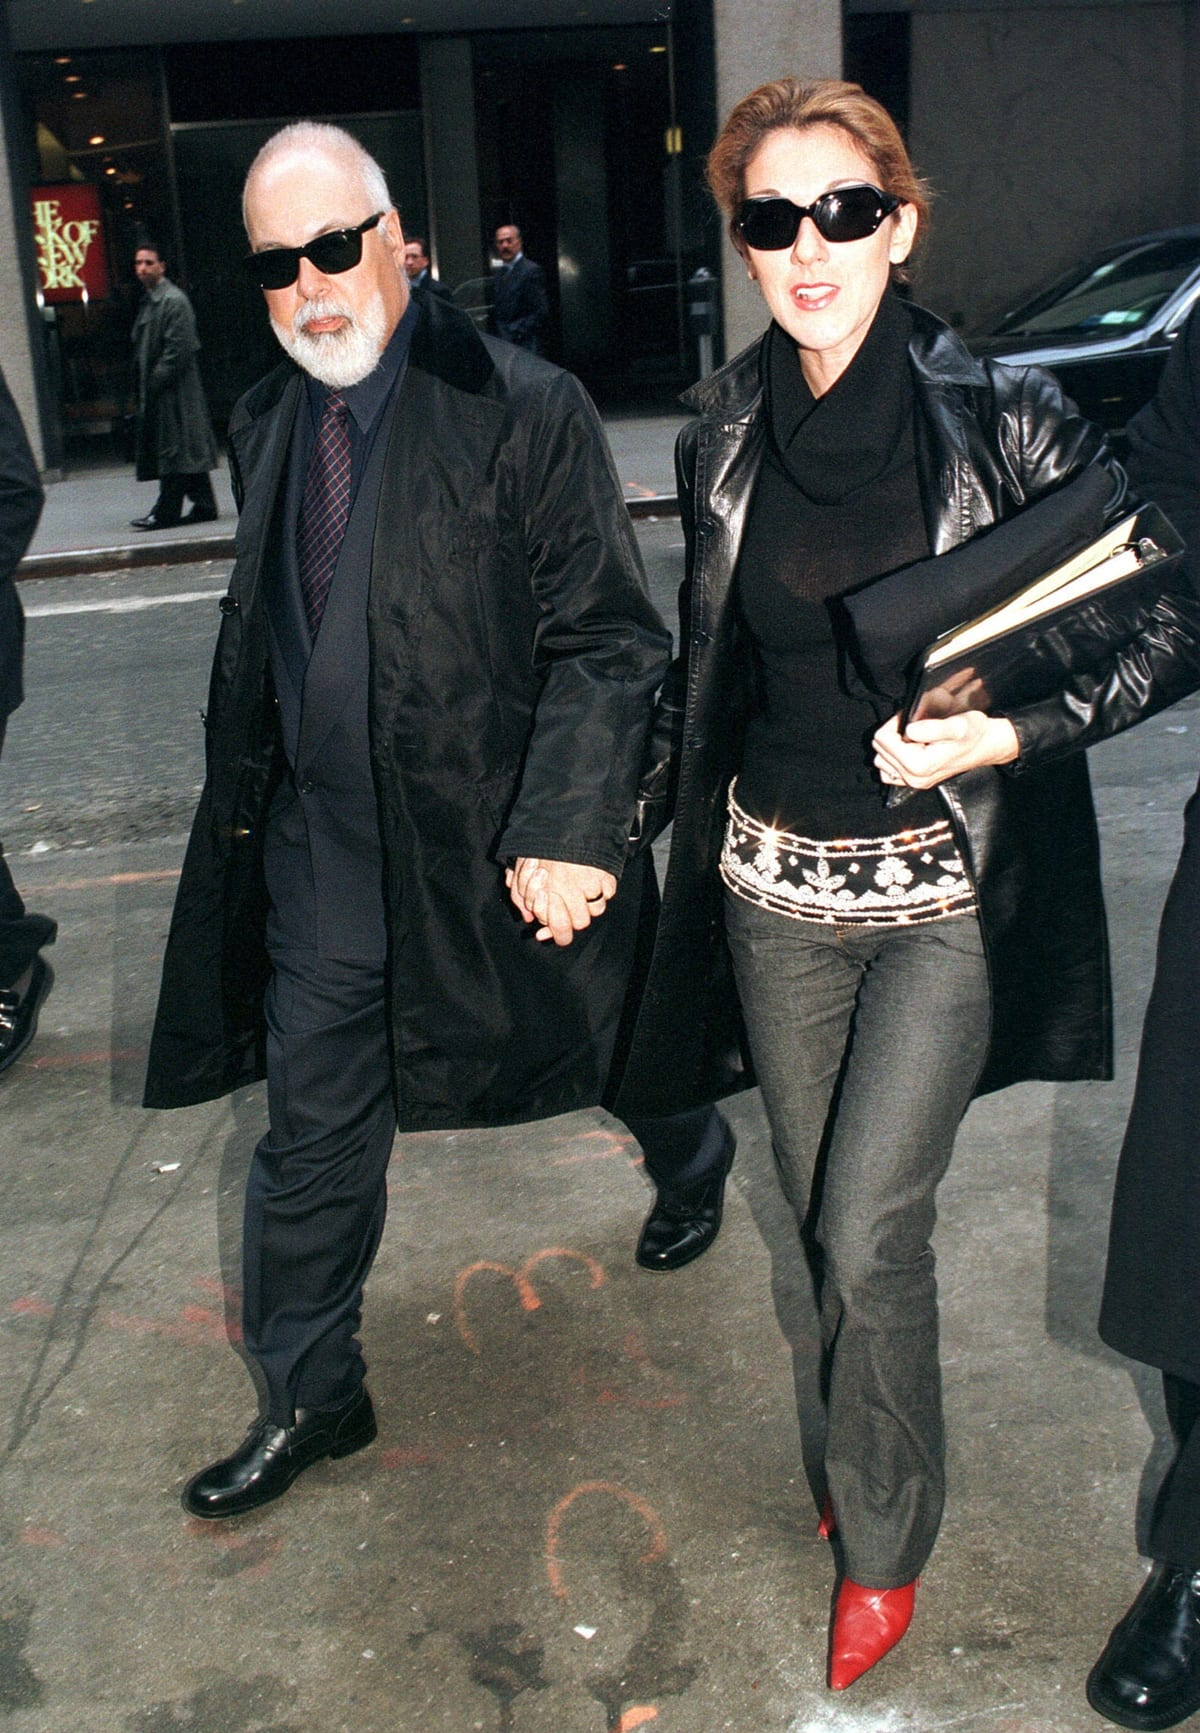 Canadian musical producer René Angélil was married to singer Céline Dion from December 17, 1994, until his death from throat cancer on January 14, 2016